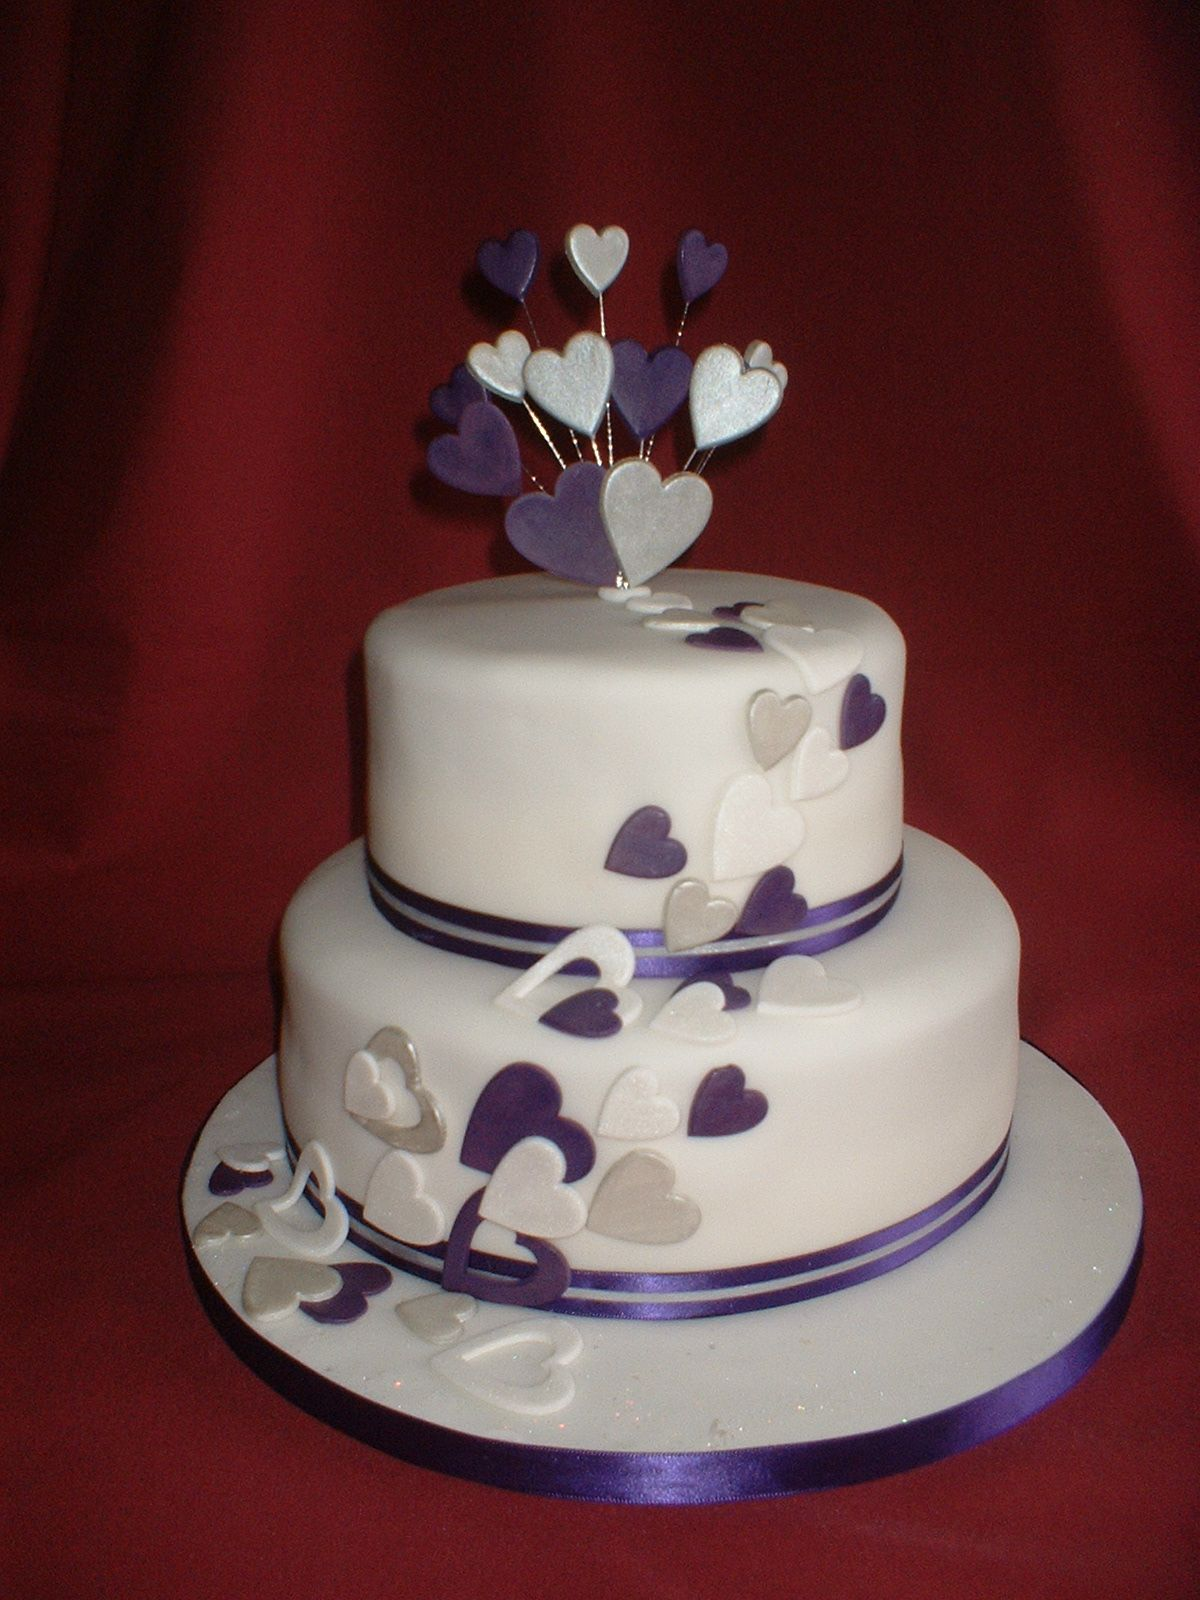 2 Tier Round Sweeping Hearts Wedding Cake Turquoise